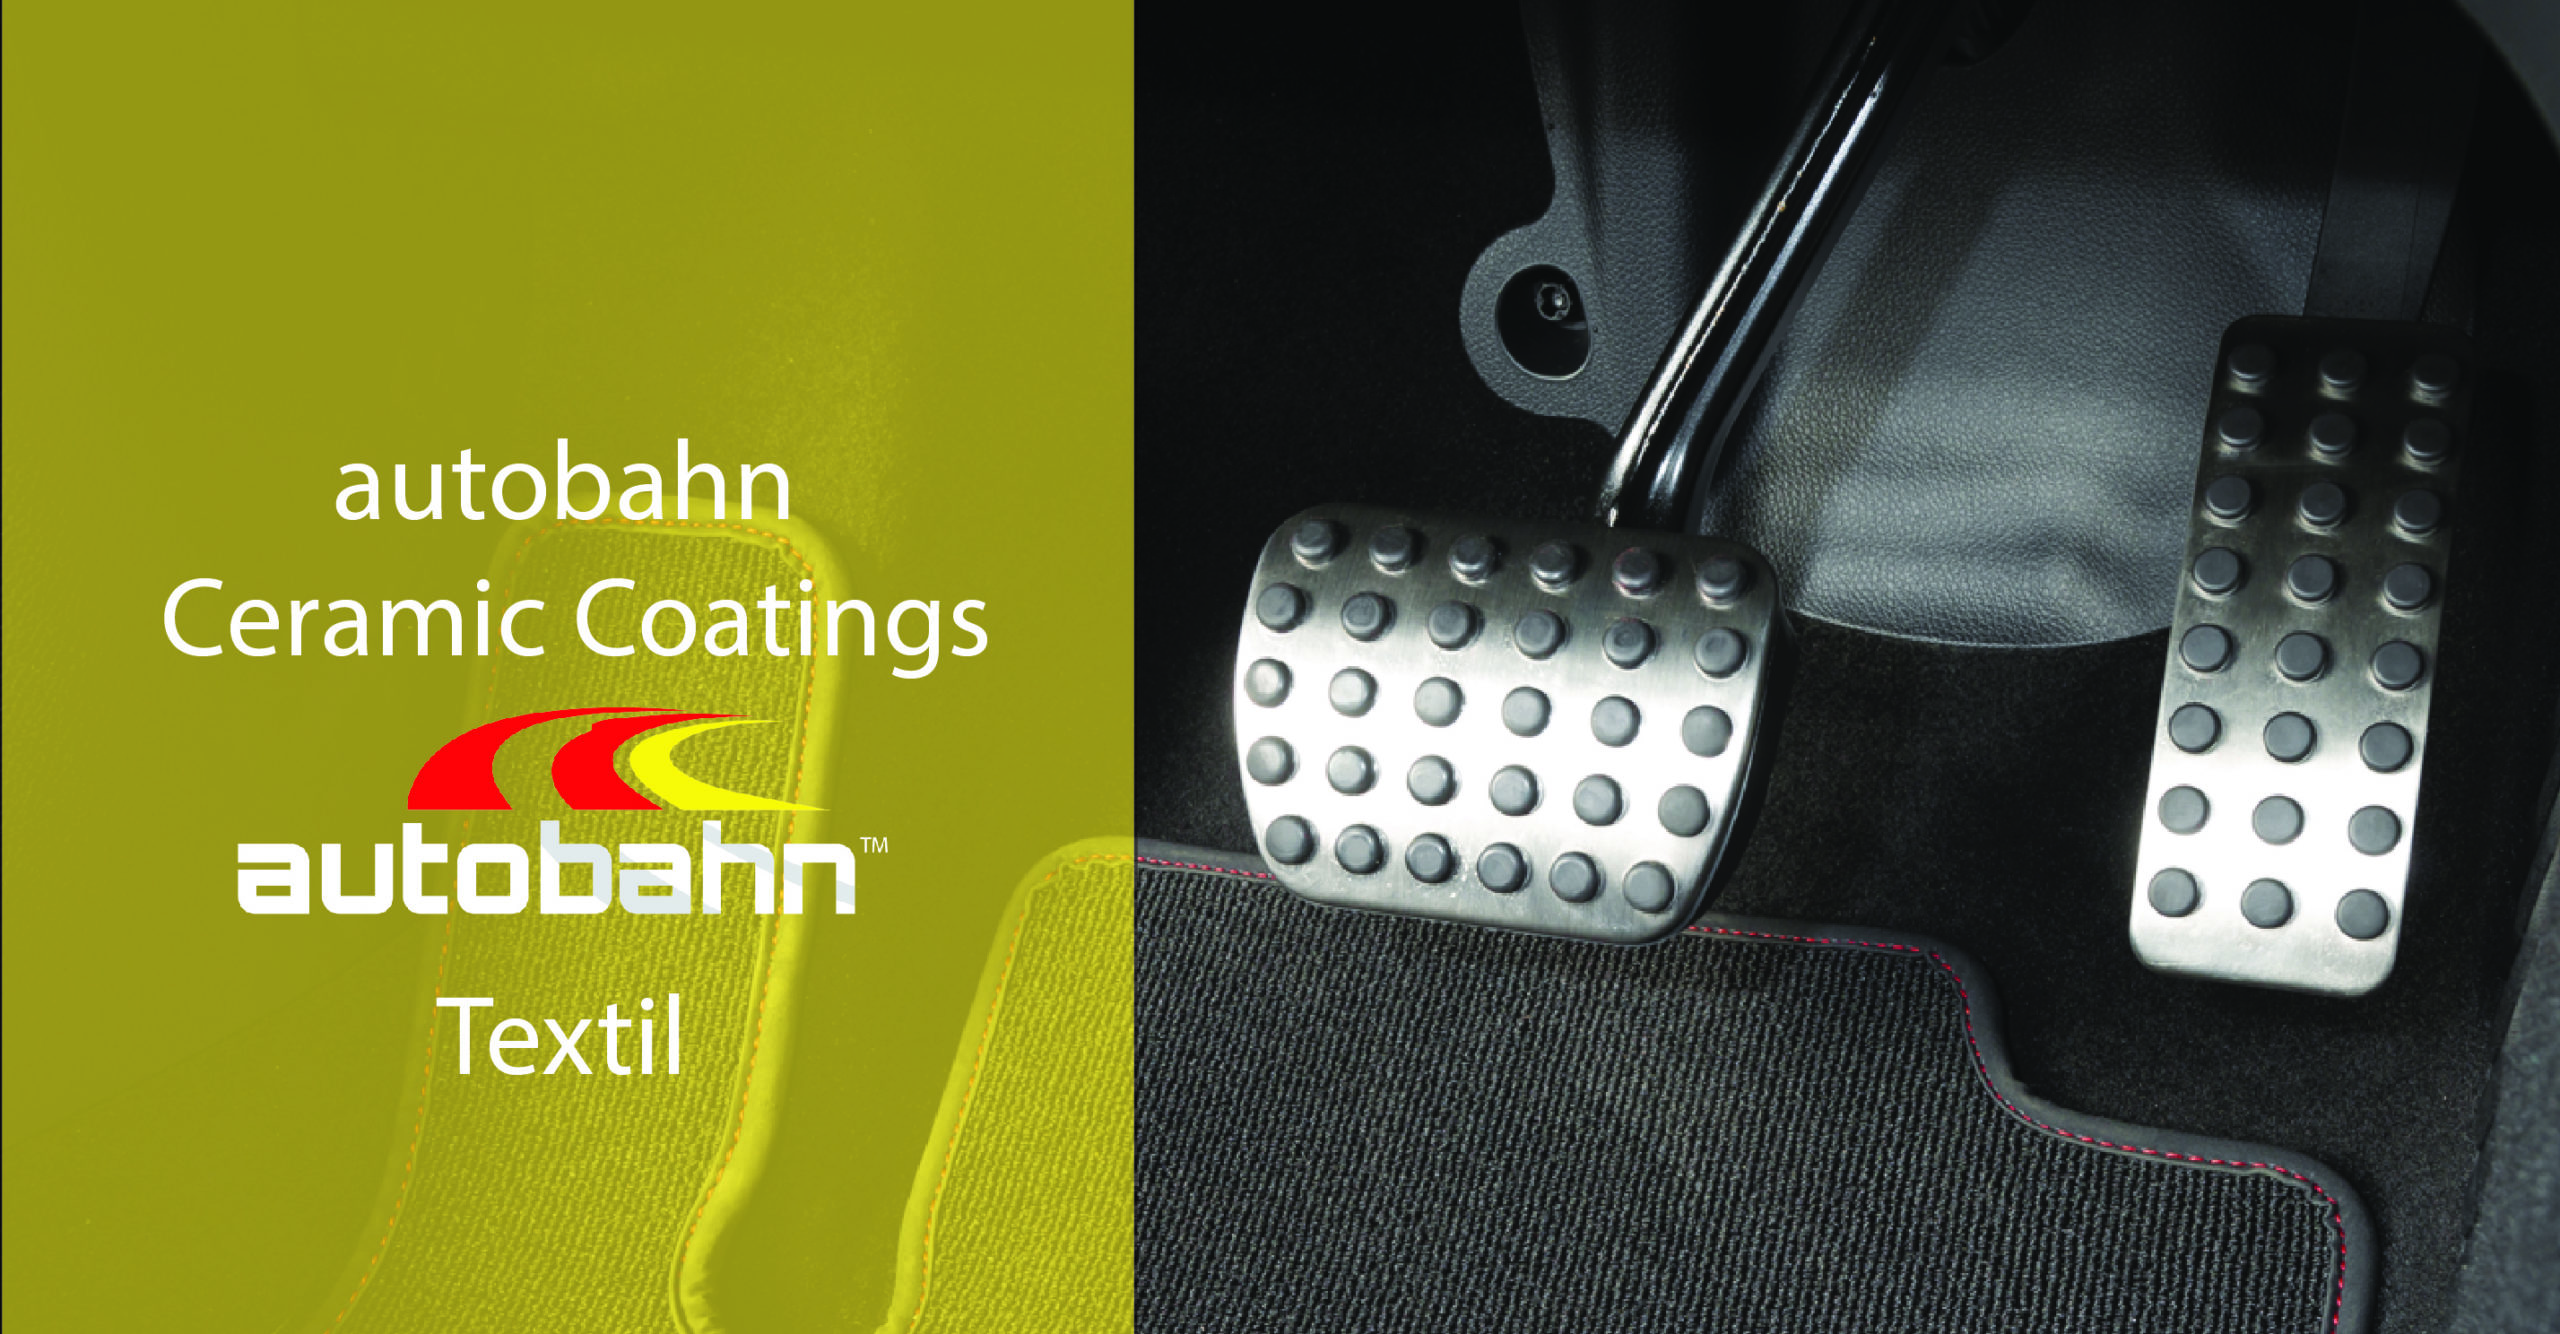 autonbahn-ceramic-coating-textile-01